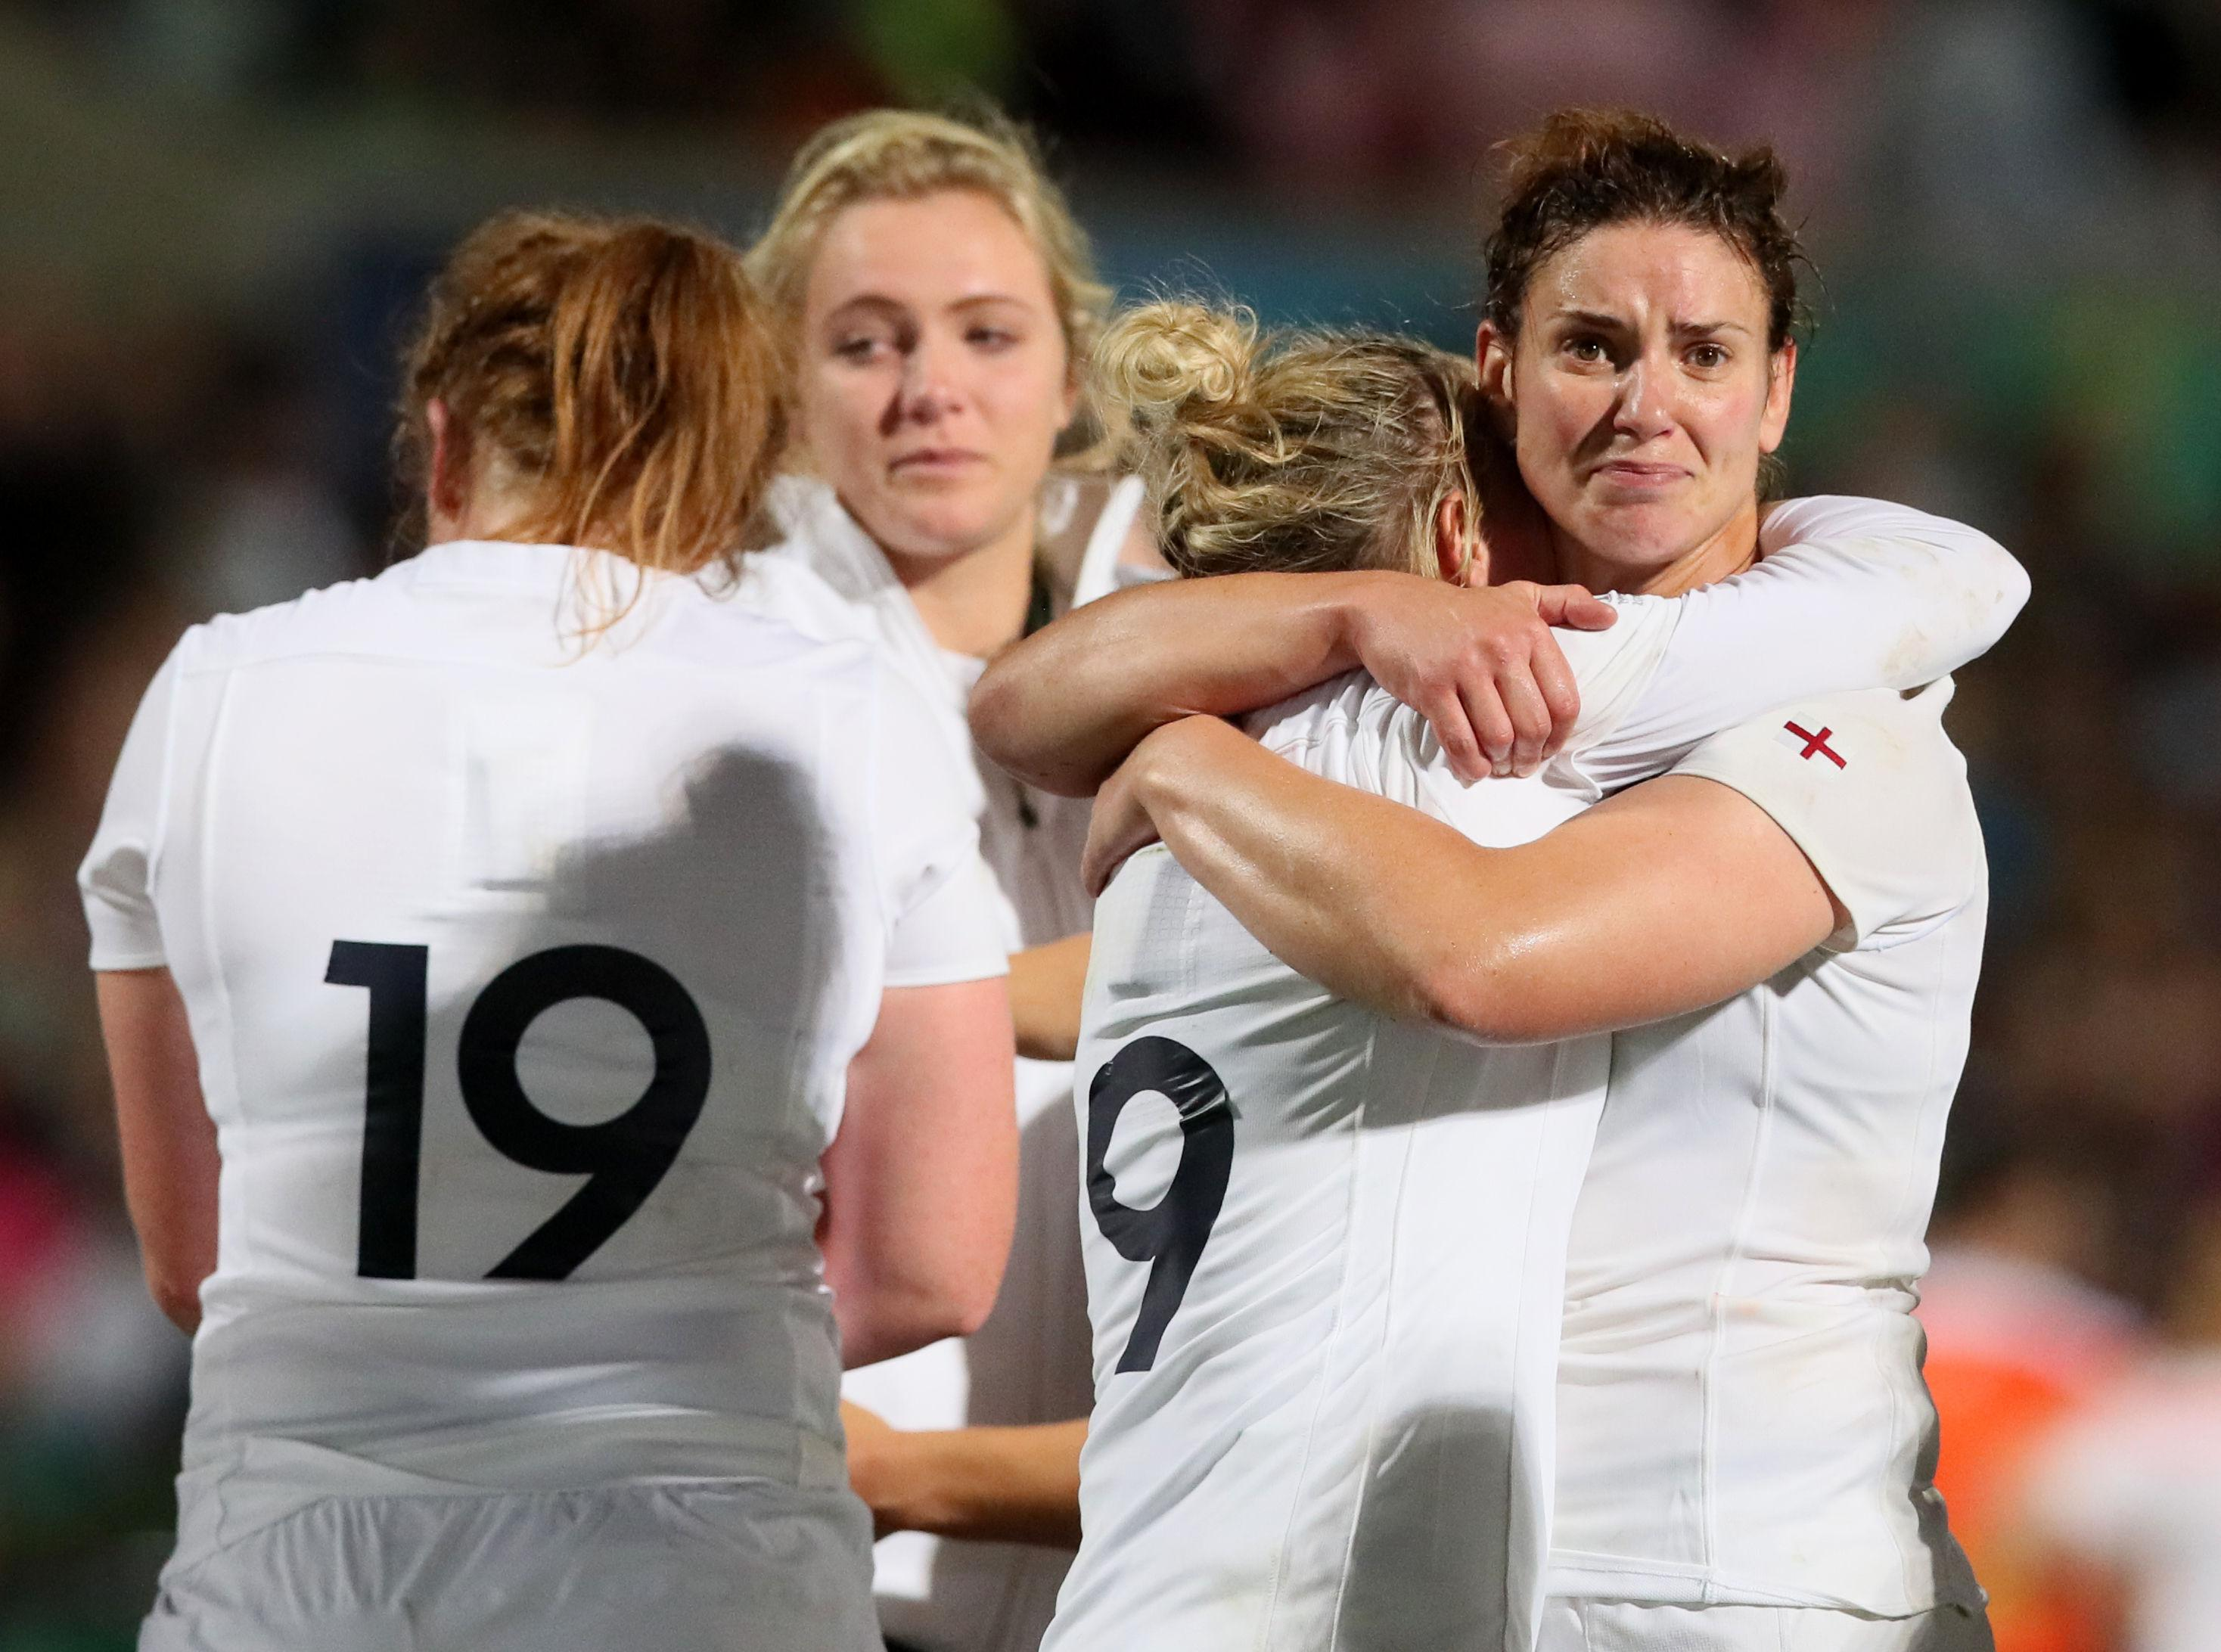 England women's at last year's world cup final against New Zealand - they have FINALLY been handed pro deals by the RFU